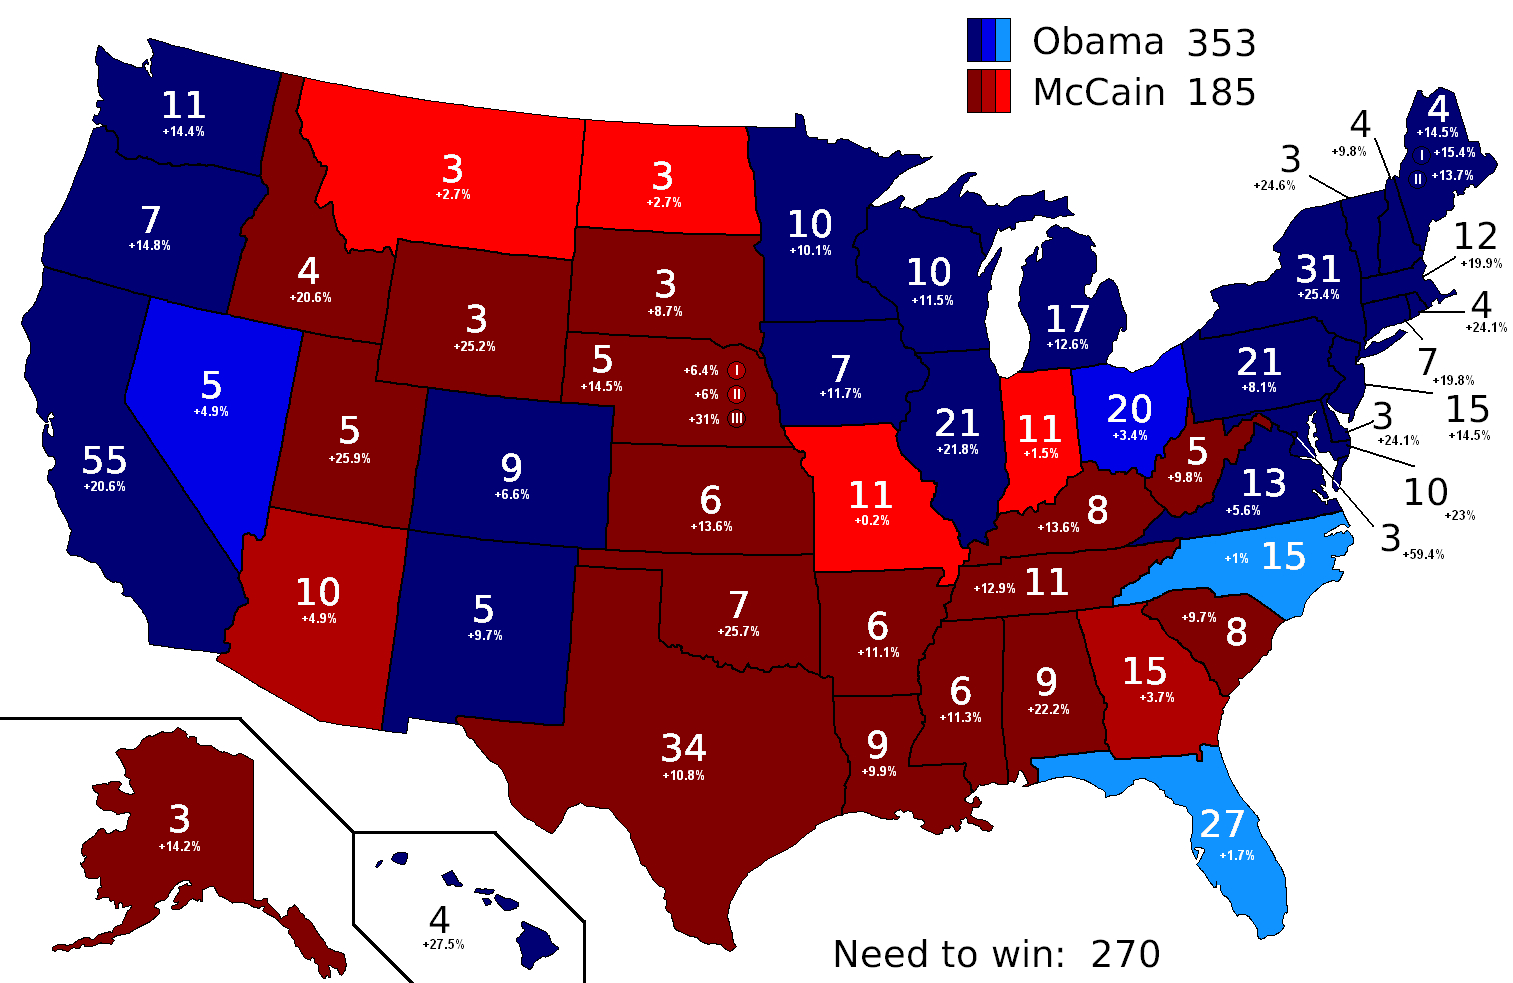 2008 Presidential Election projections by Nate Silver on election night (Nov 4, 2008)